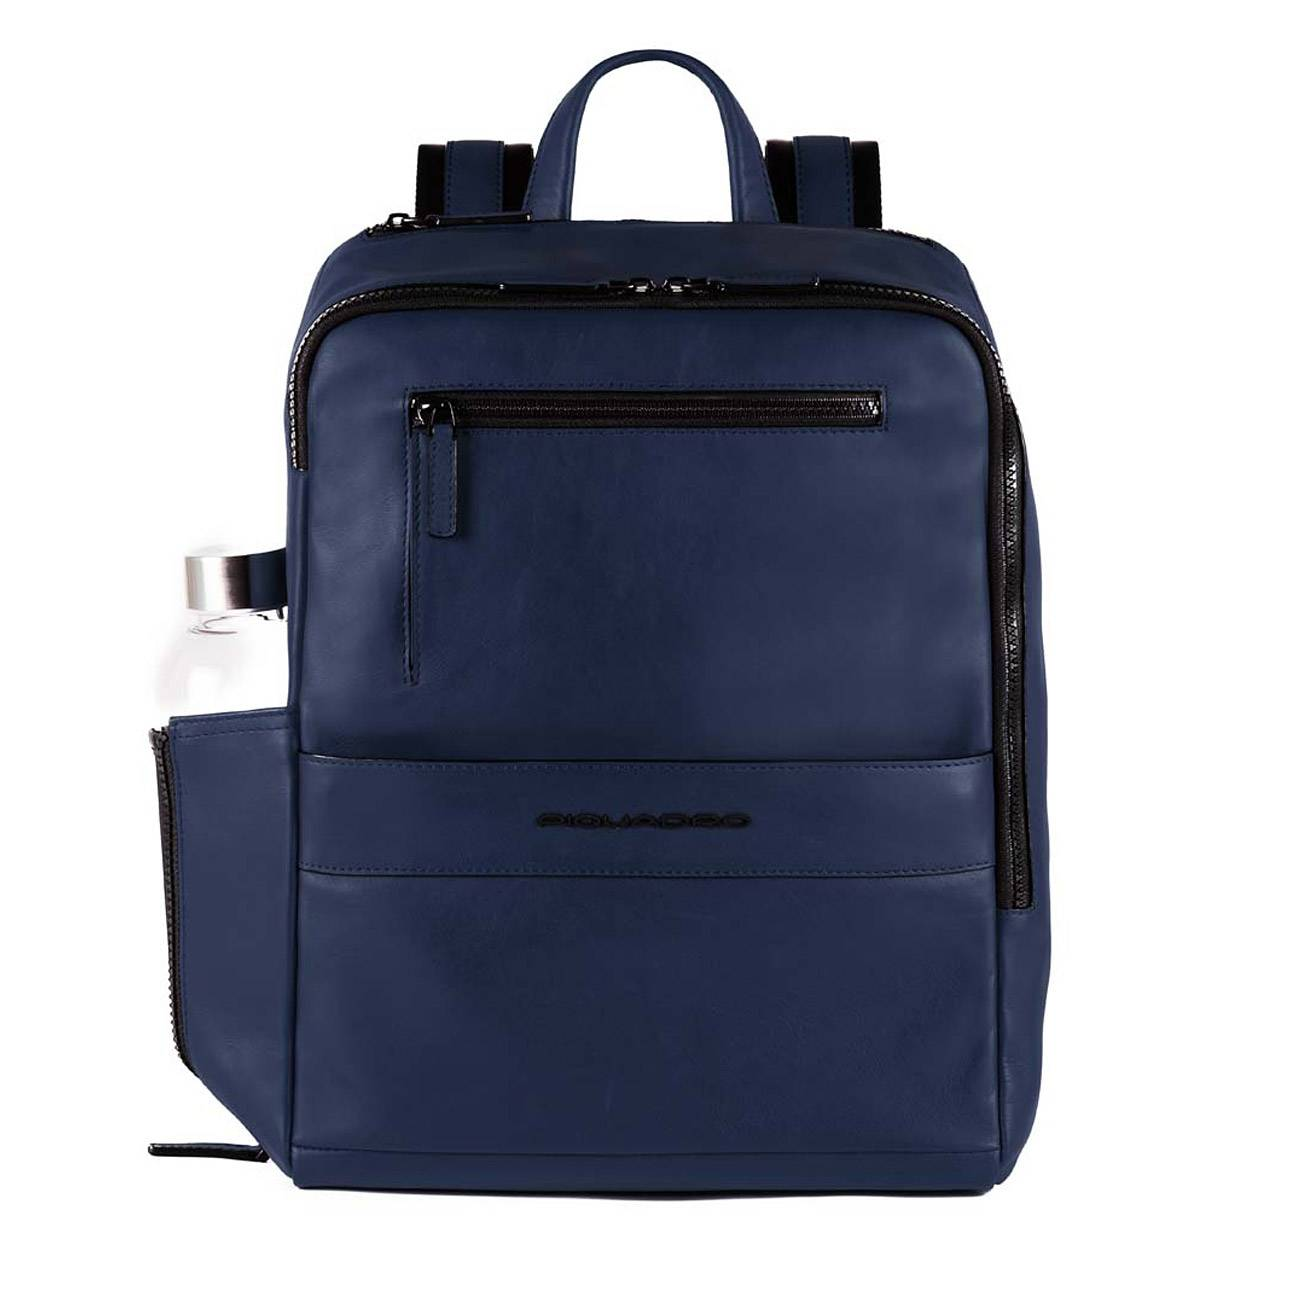 SETEBOS COMPUTER BACKPACK